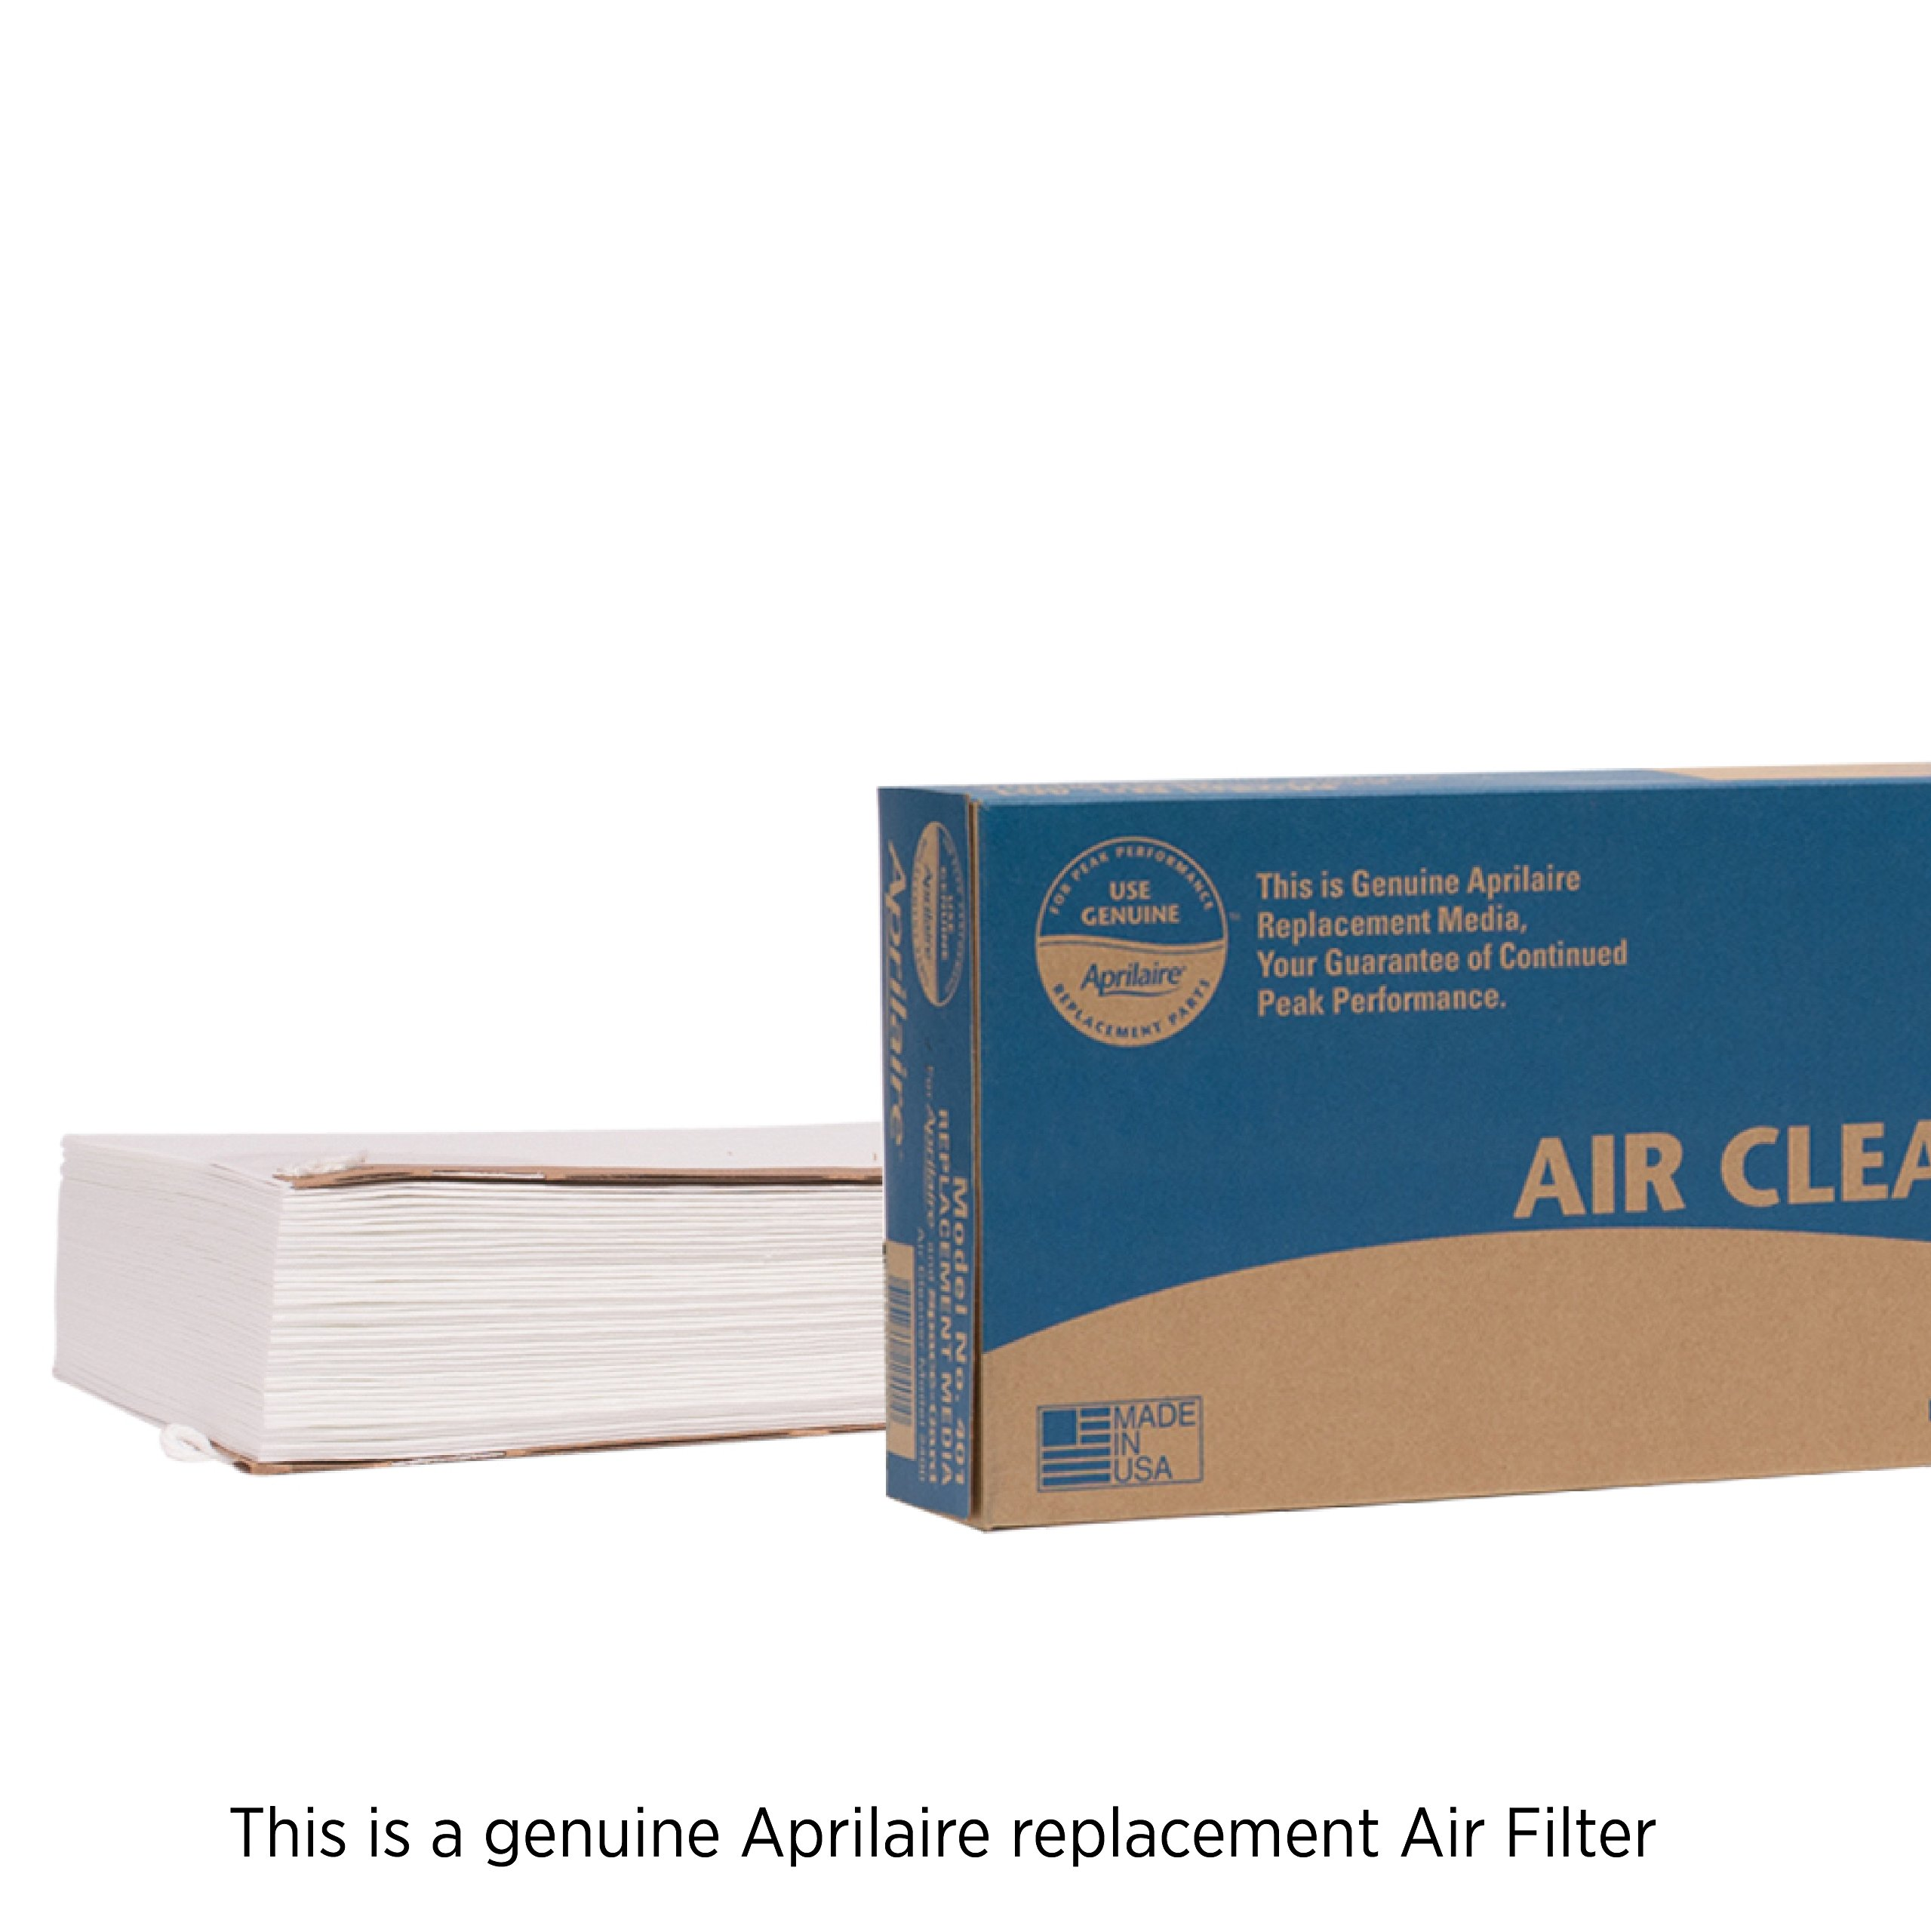 Aprilaire 401 Replacement Filter for Aprilaire Whole House Air Purifier Model: 2400, Space Gard 2400, MERV 10 (Pack of 1) by Aprilaire